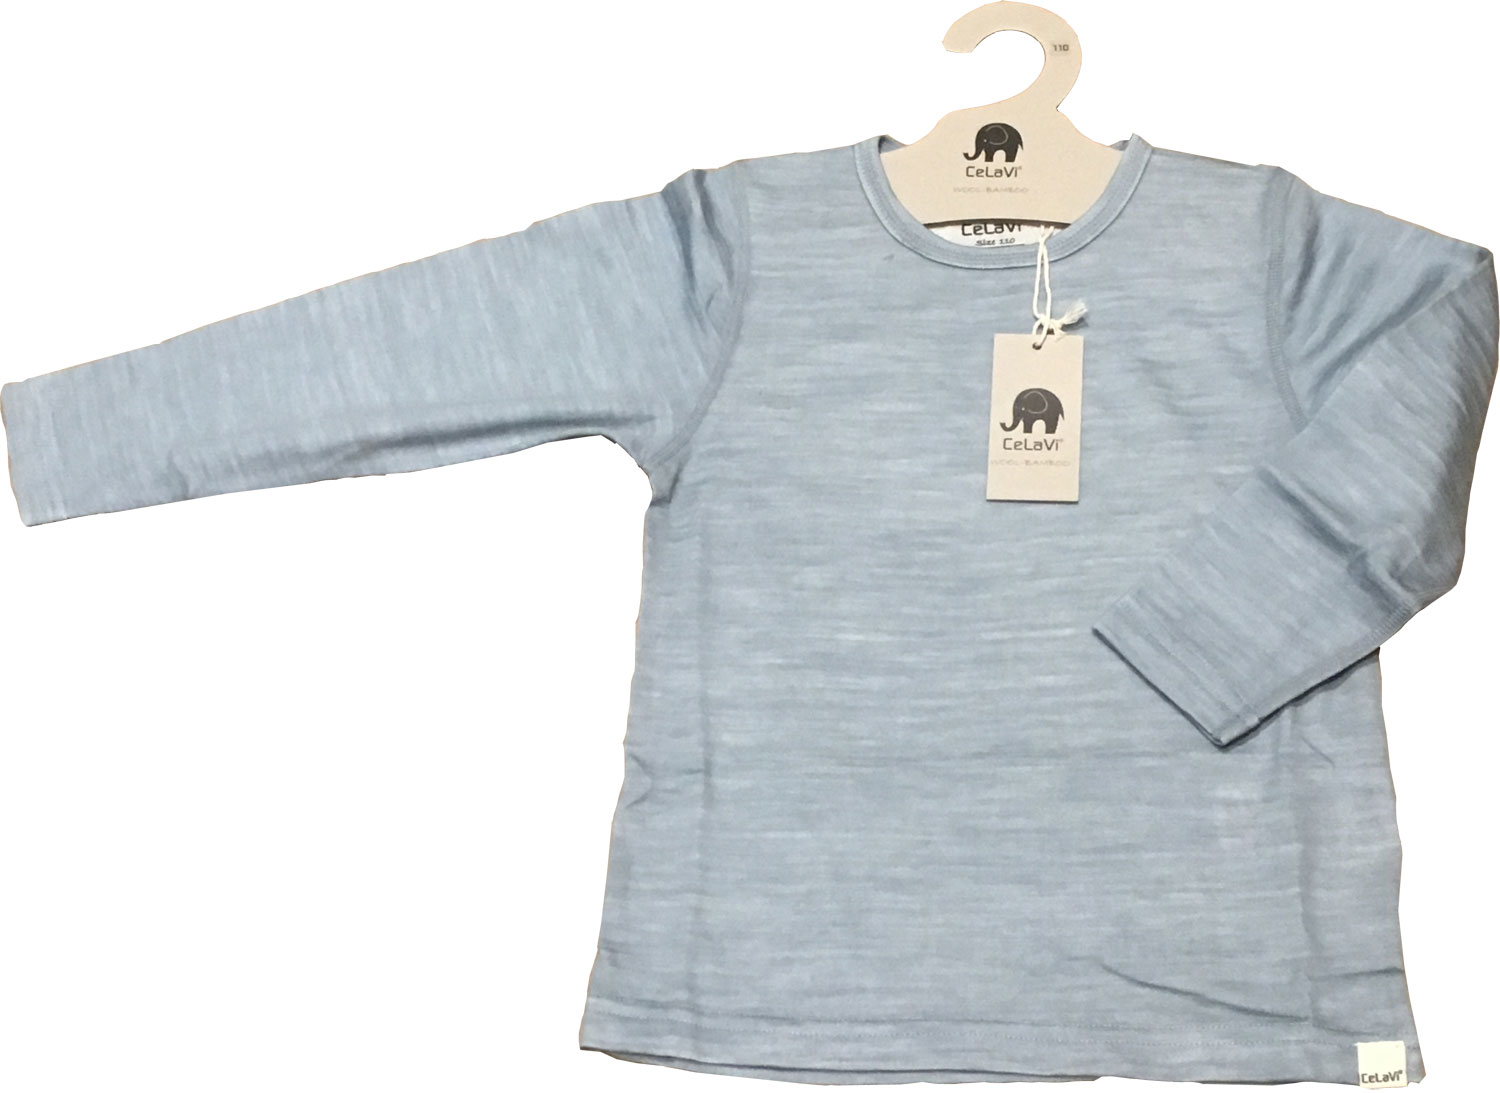 CelaVi luxury kids base layer top with merino wool outer layer, and smooth comfortable bamboo inner layer